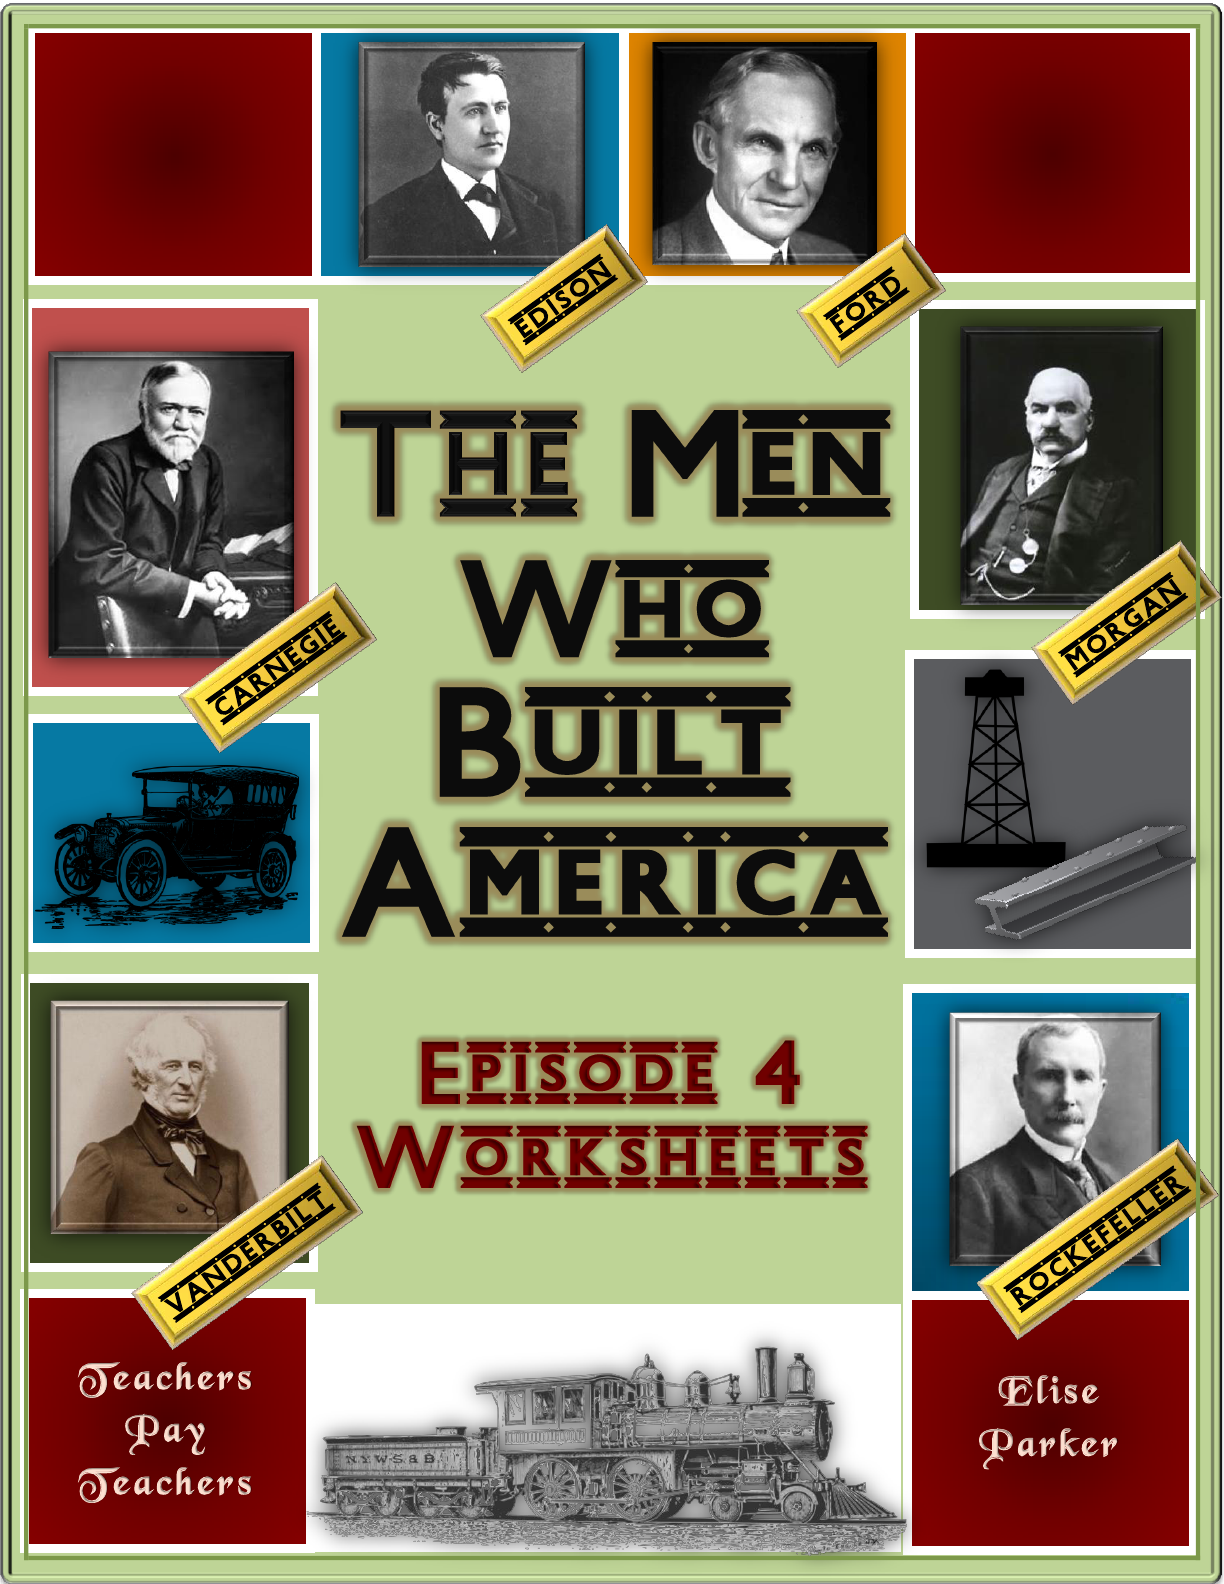 The men who built america episode 4 worksheets history channel the men who built america worksheets help students learn more as they watch this engaging history robcynllc Image collections